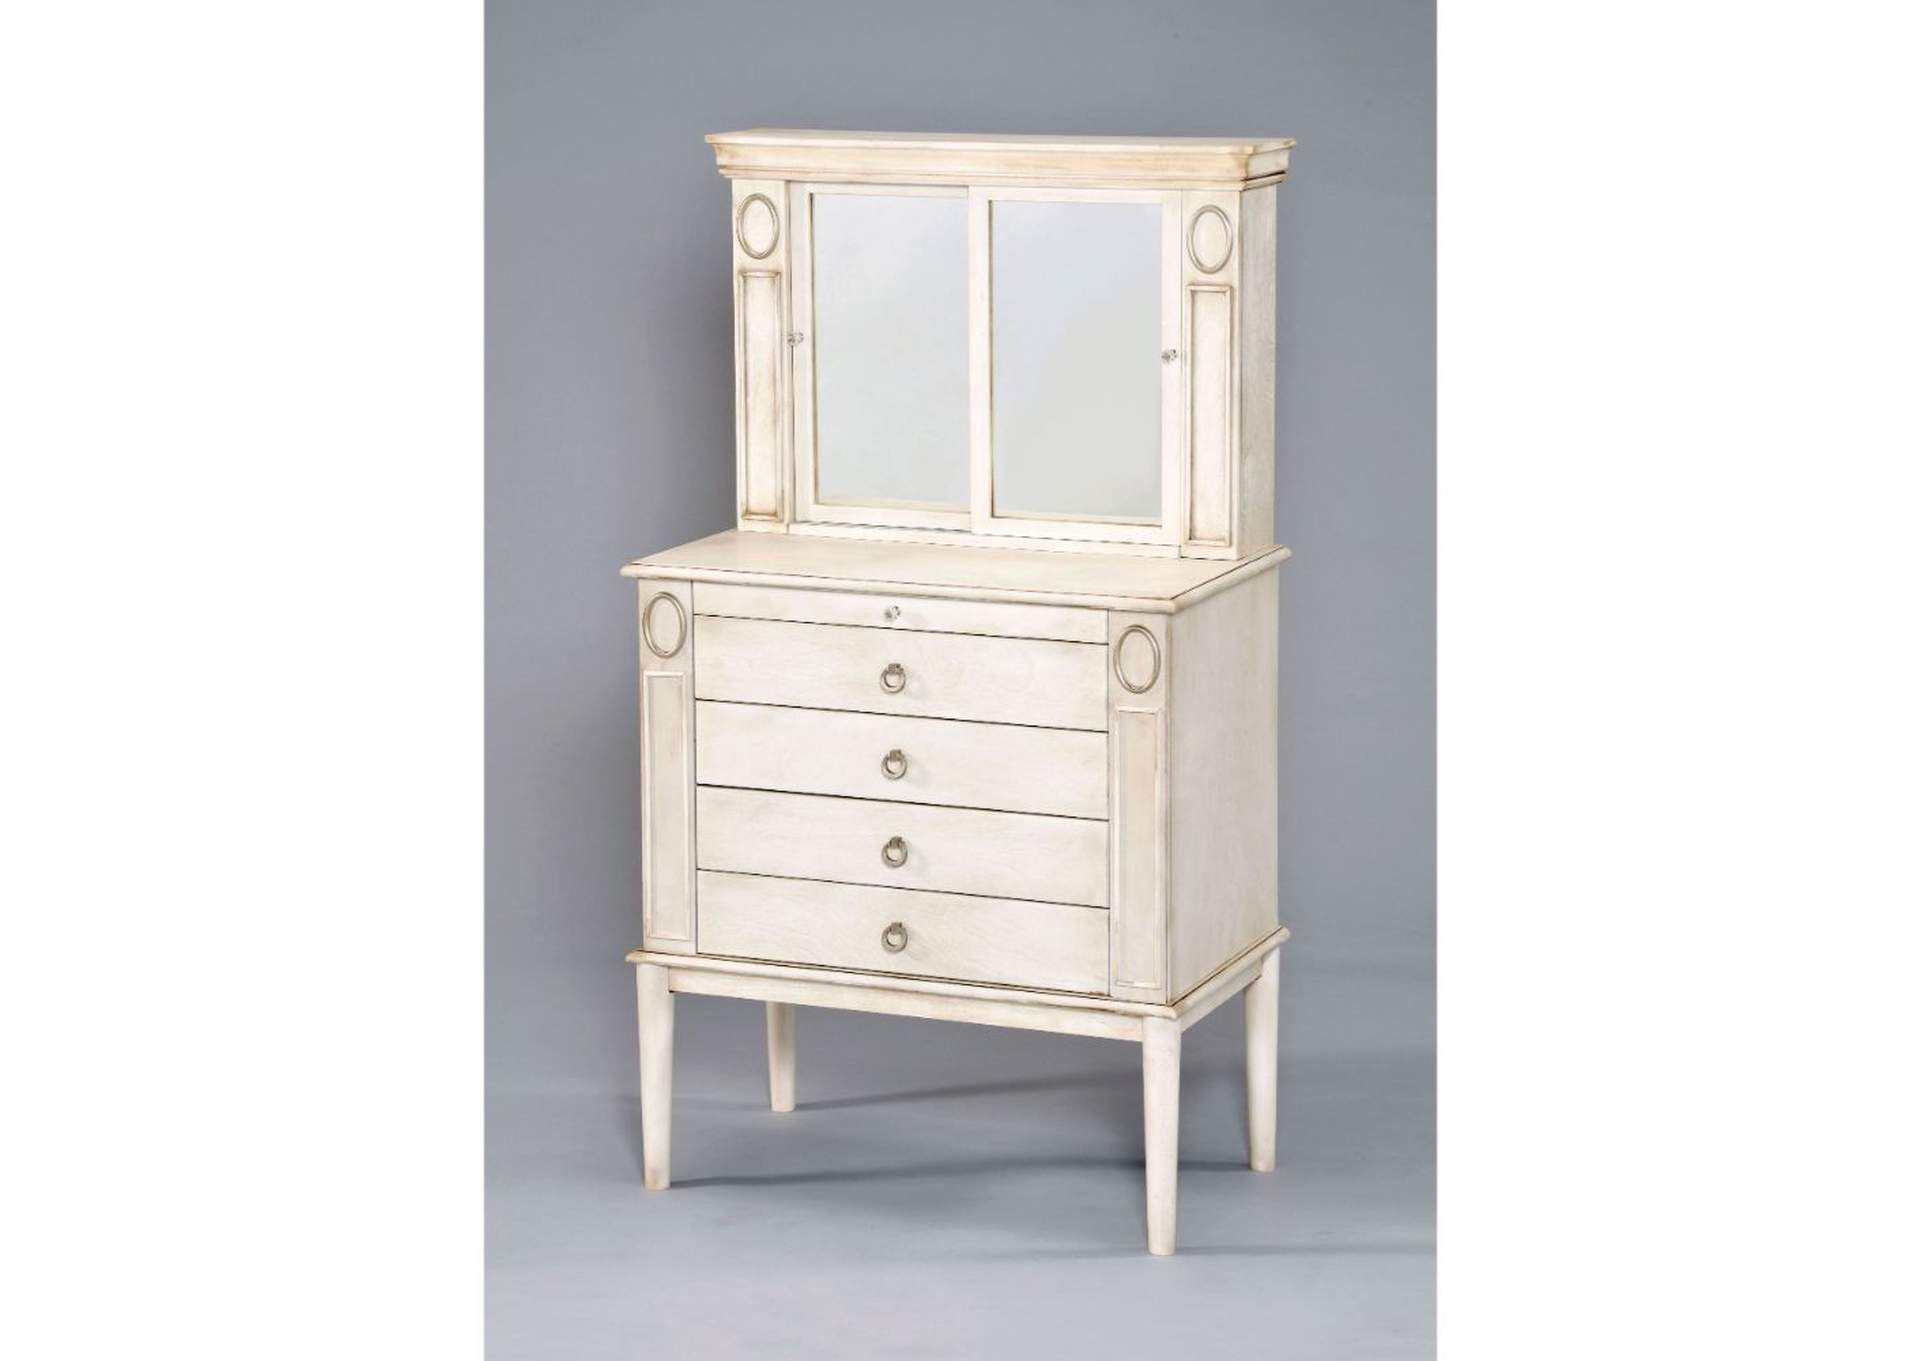 Leven Antique White Jewelry Armoire,Acme